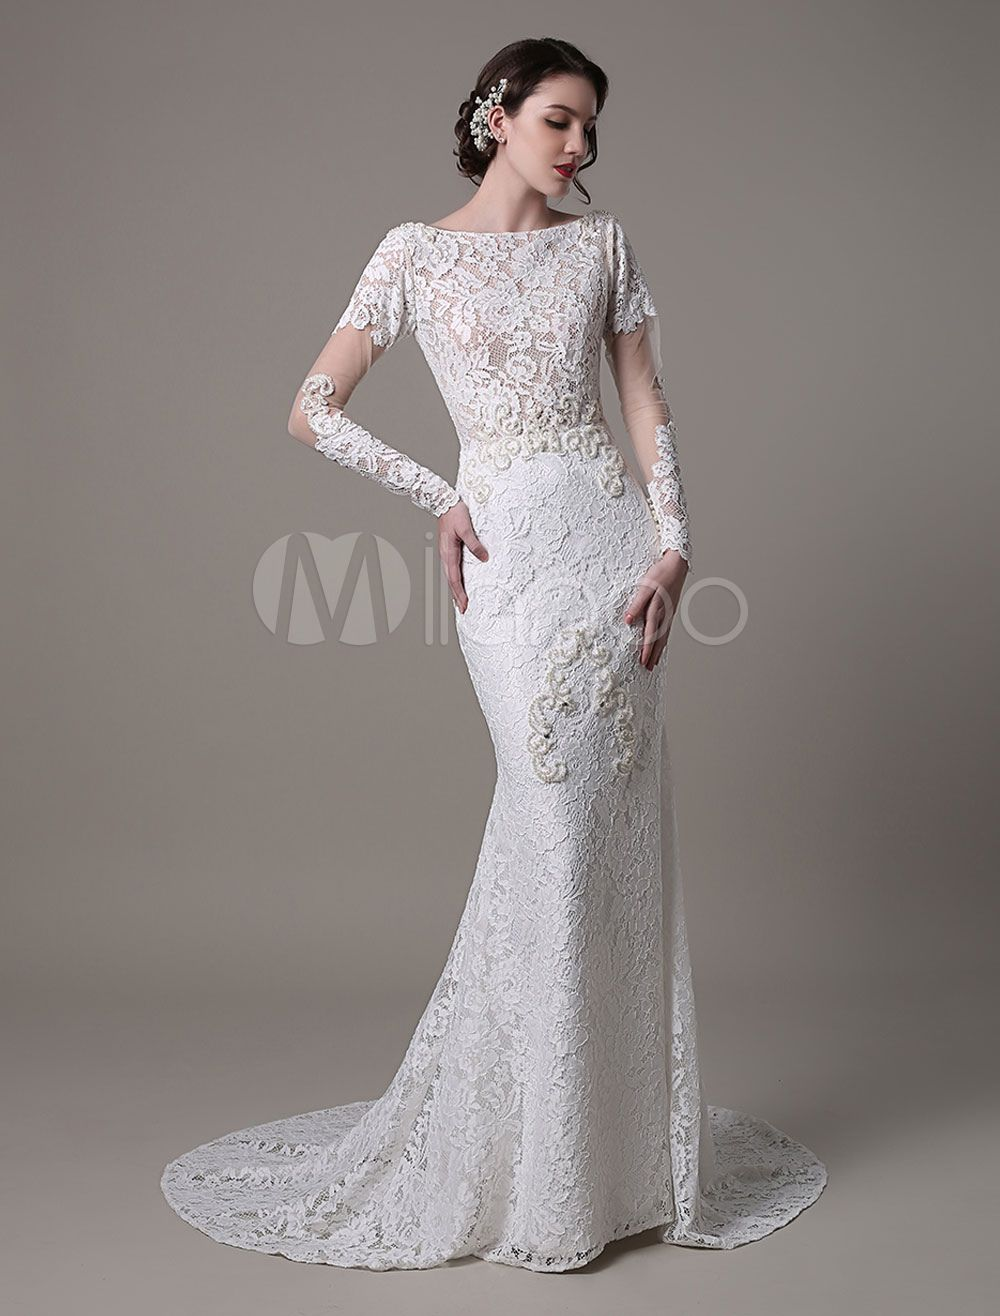 Vintage Lace Wedding Dress With Long Sheer Sleeves And